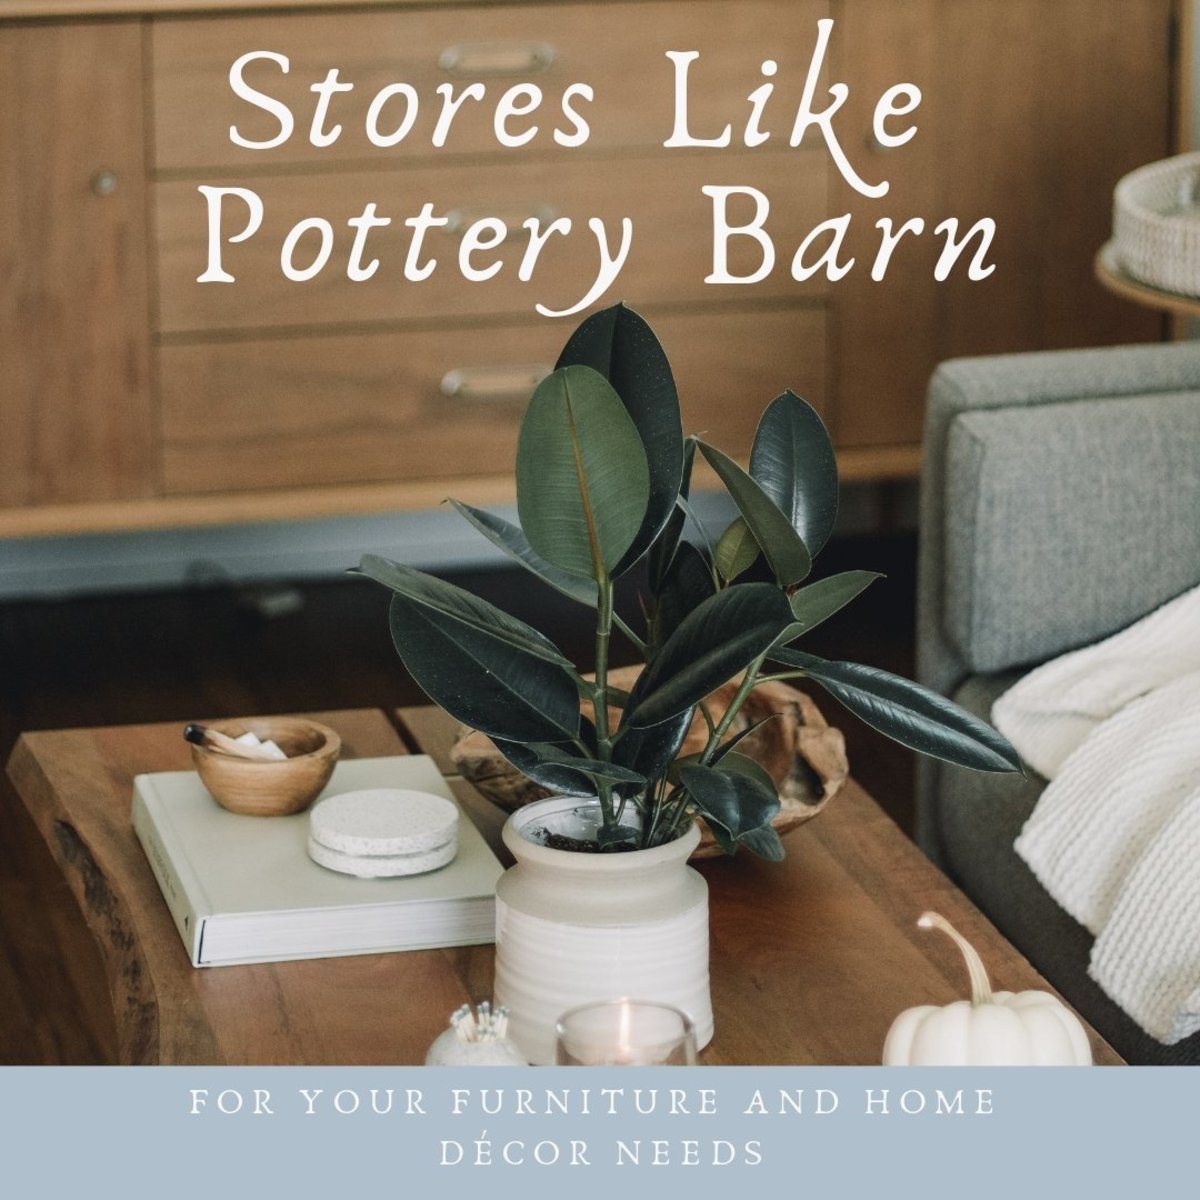 stores-like-pottery-barn-2